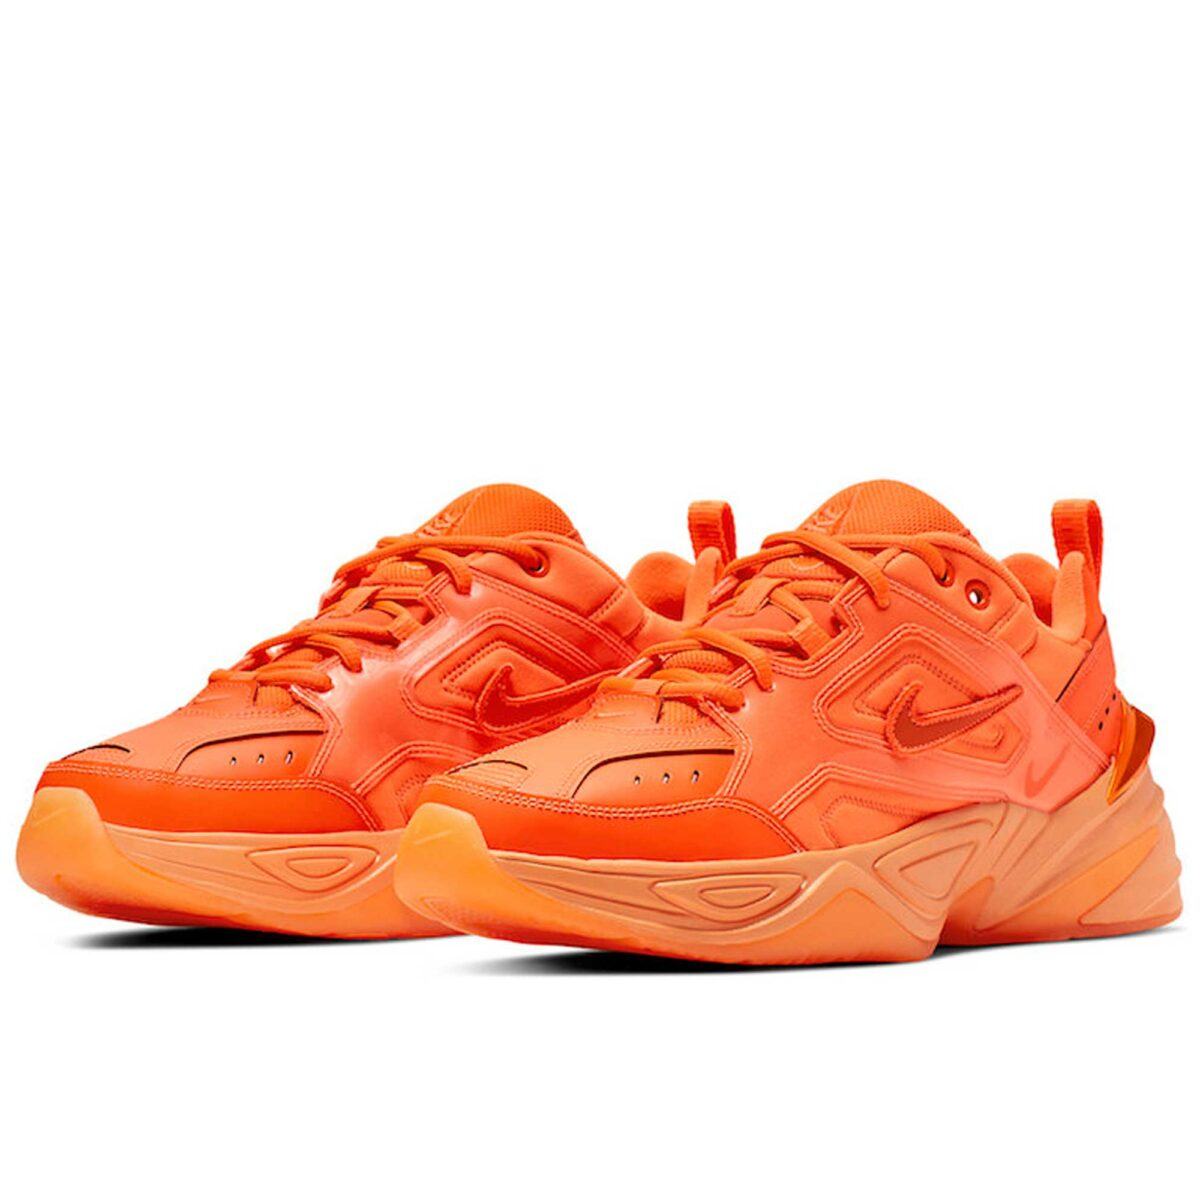 nike m2k tekno gel orange ci5749_888 купить